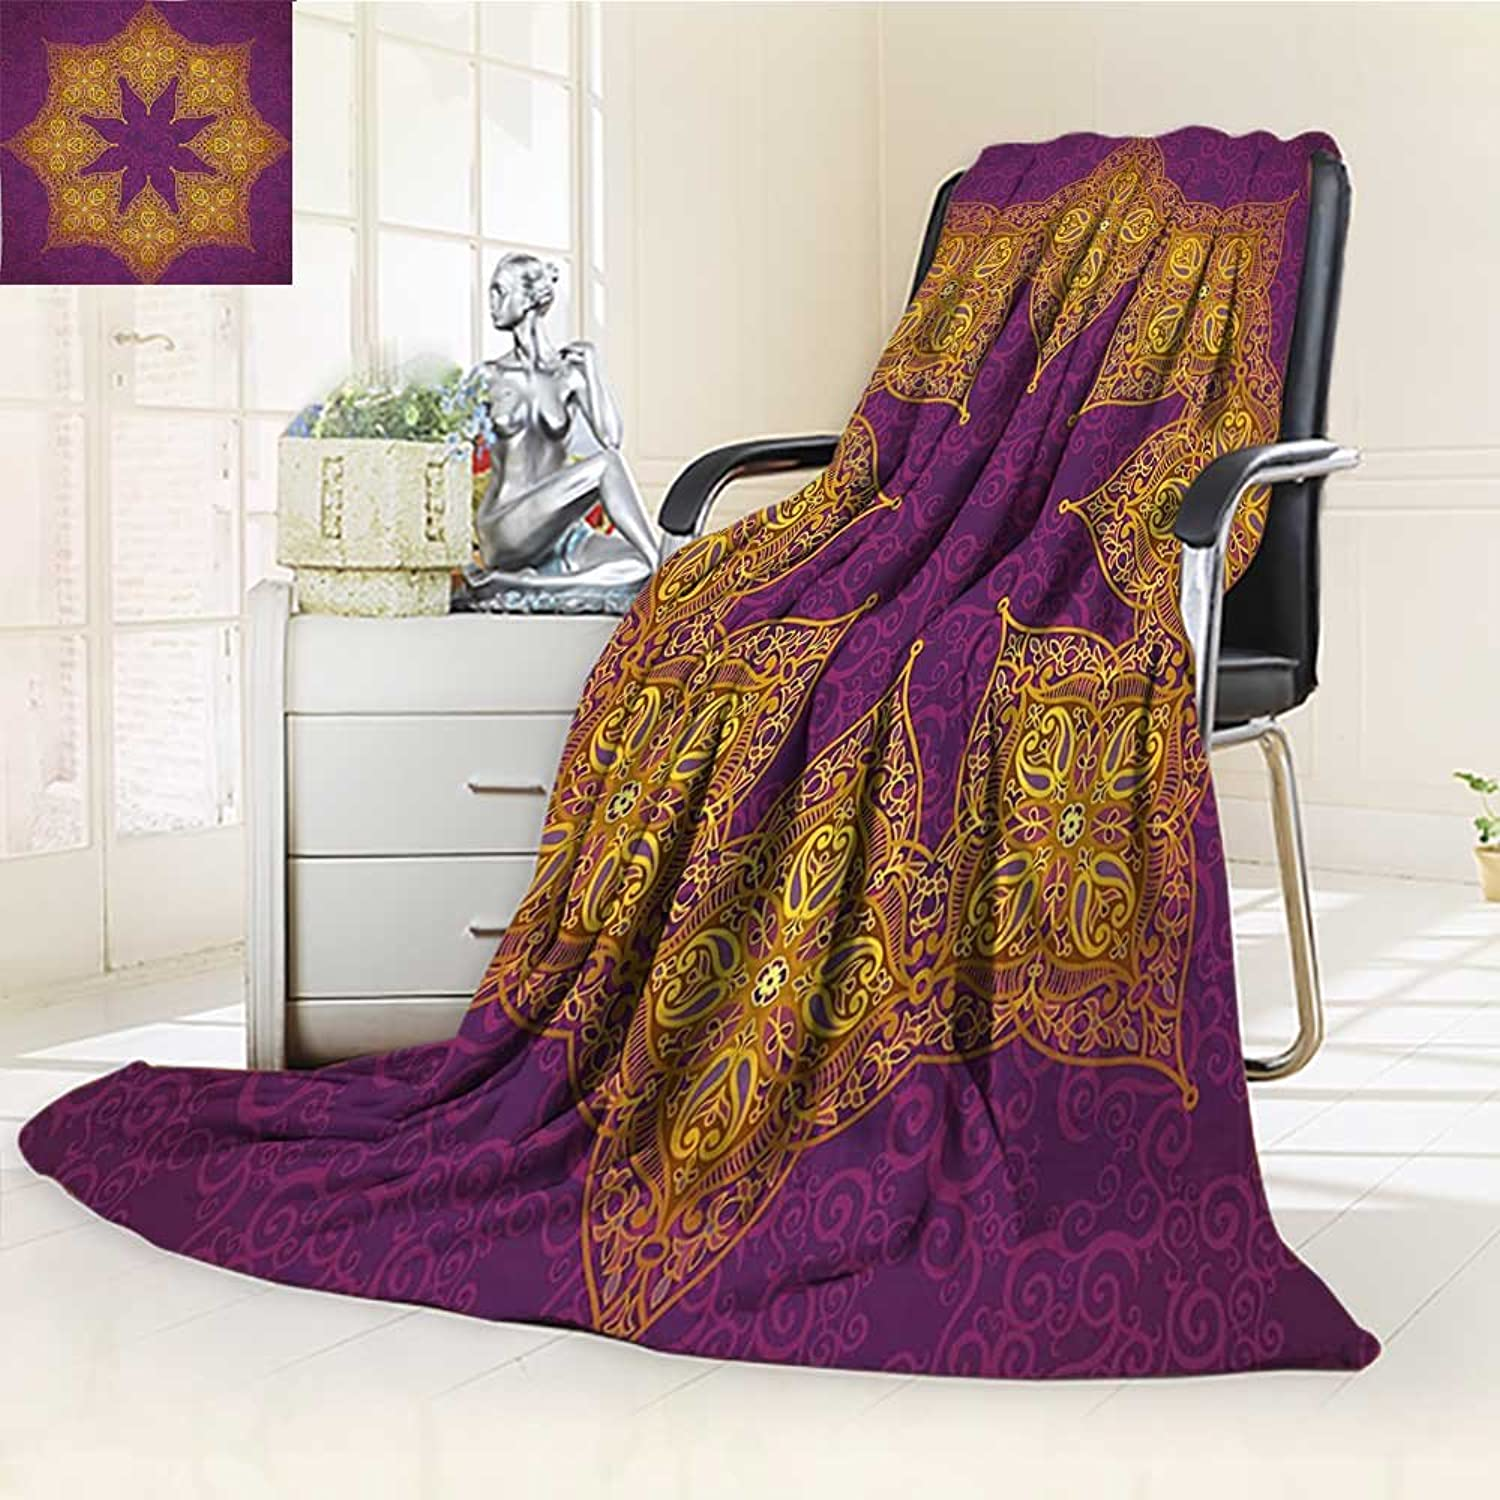 AmaPark Digital Printing Blanket Royal colors Cosmos Symbol Themeations purple Summer Quilt Comforter